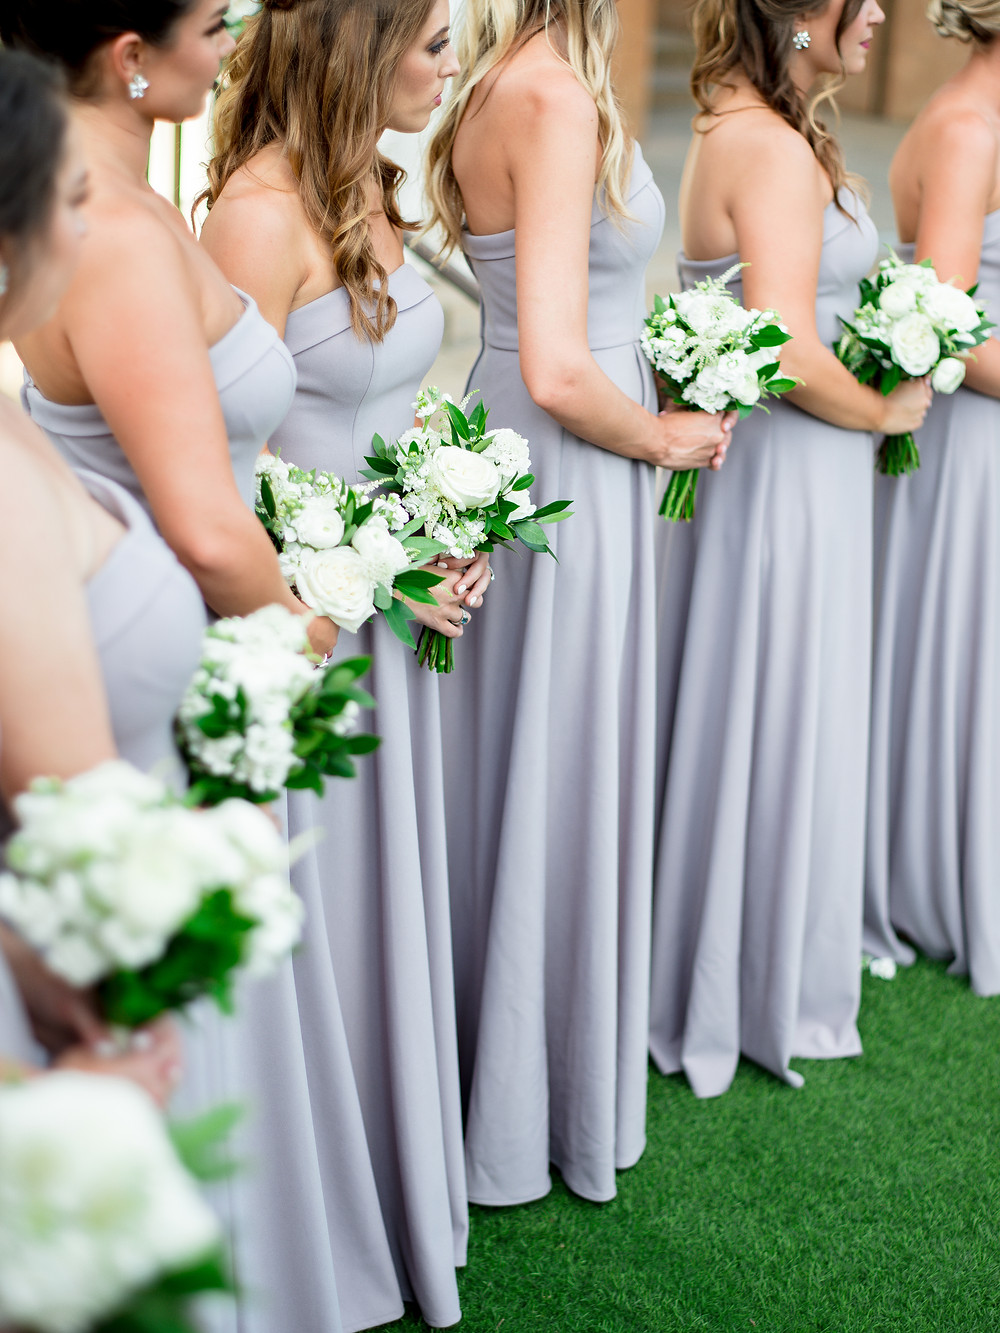 Royal Palms Bridesmaids | Scottsdale, AZ | Elyse Hall Wedding Photography